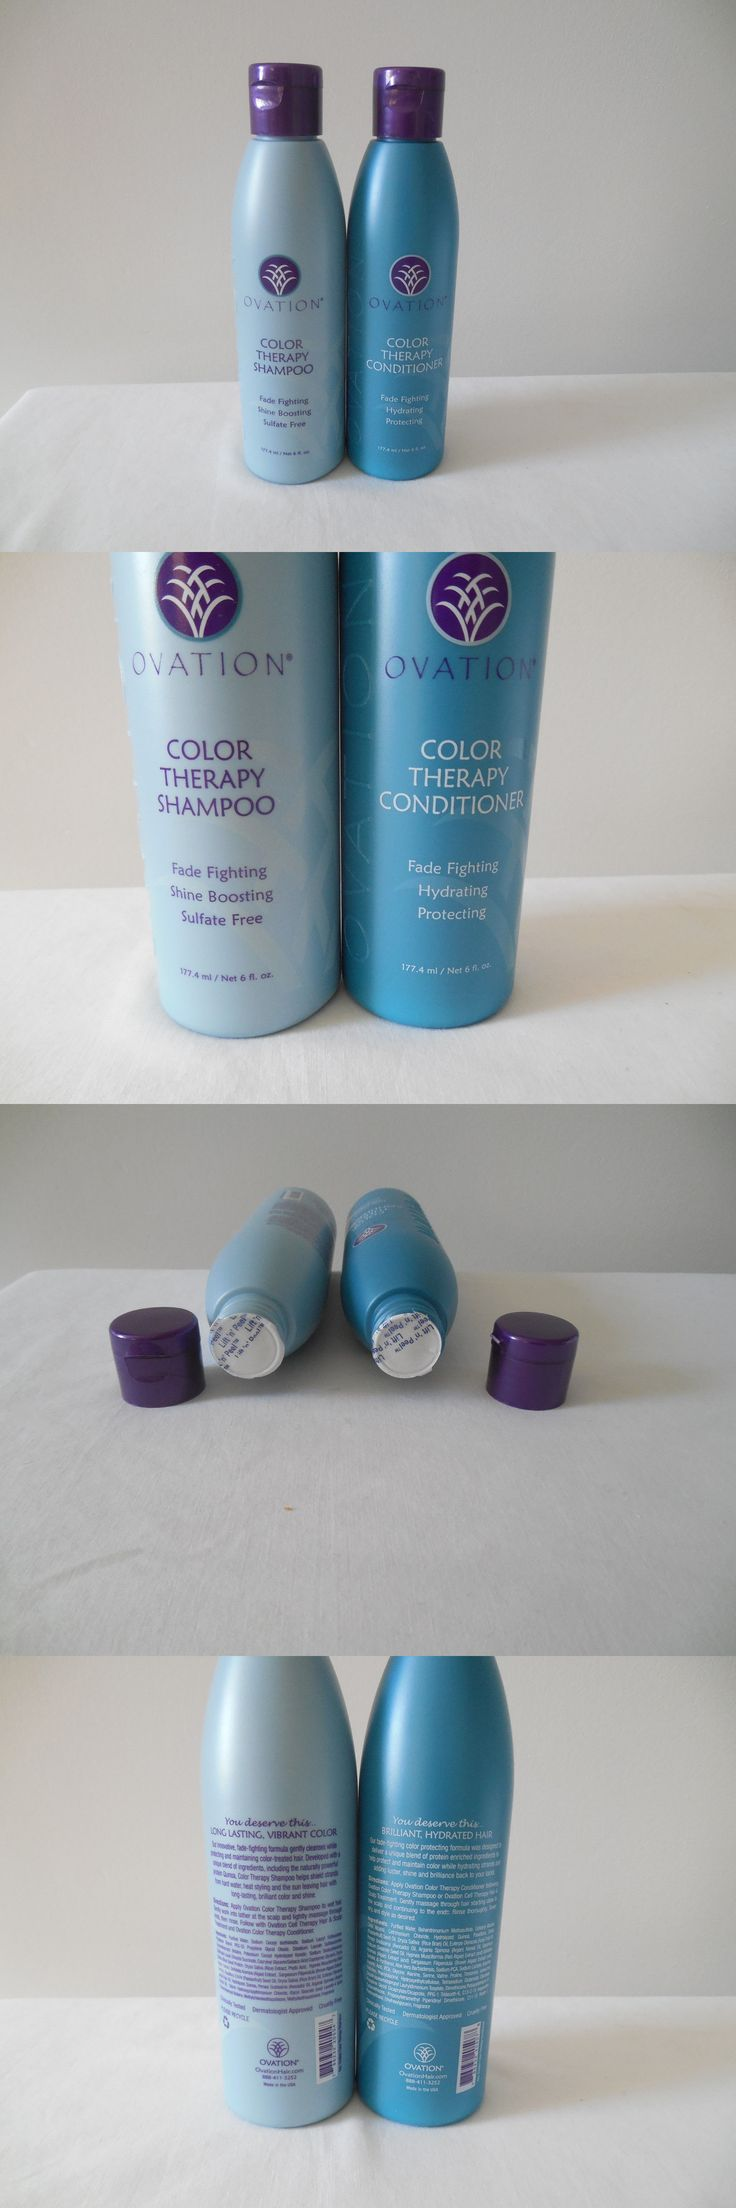 Hair Beauty: Ovation Hair Color Therapy Shampoo And Color Therapy Conditioner 6 Oz New And Sealed BUY IT NOW ONLY: $39.25